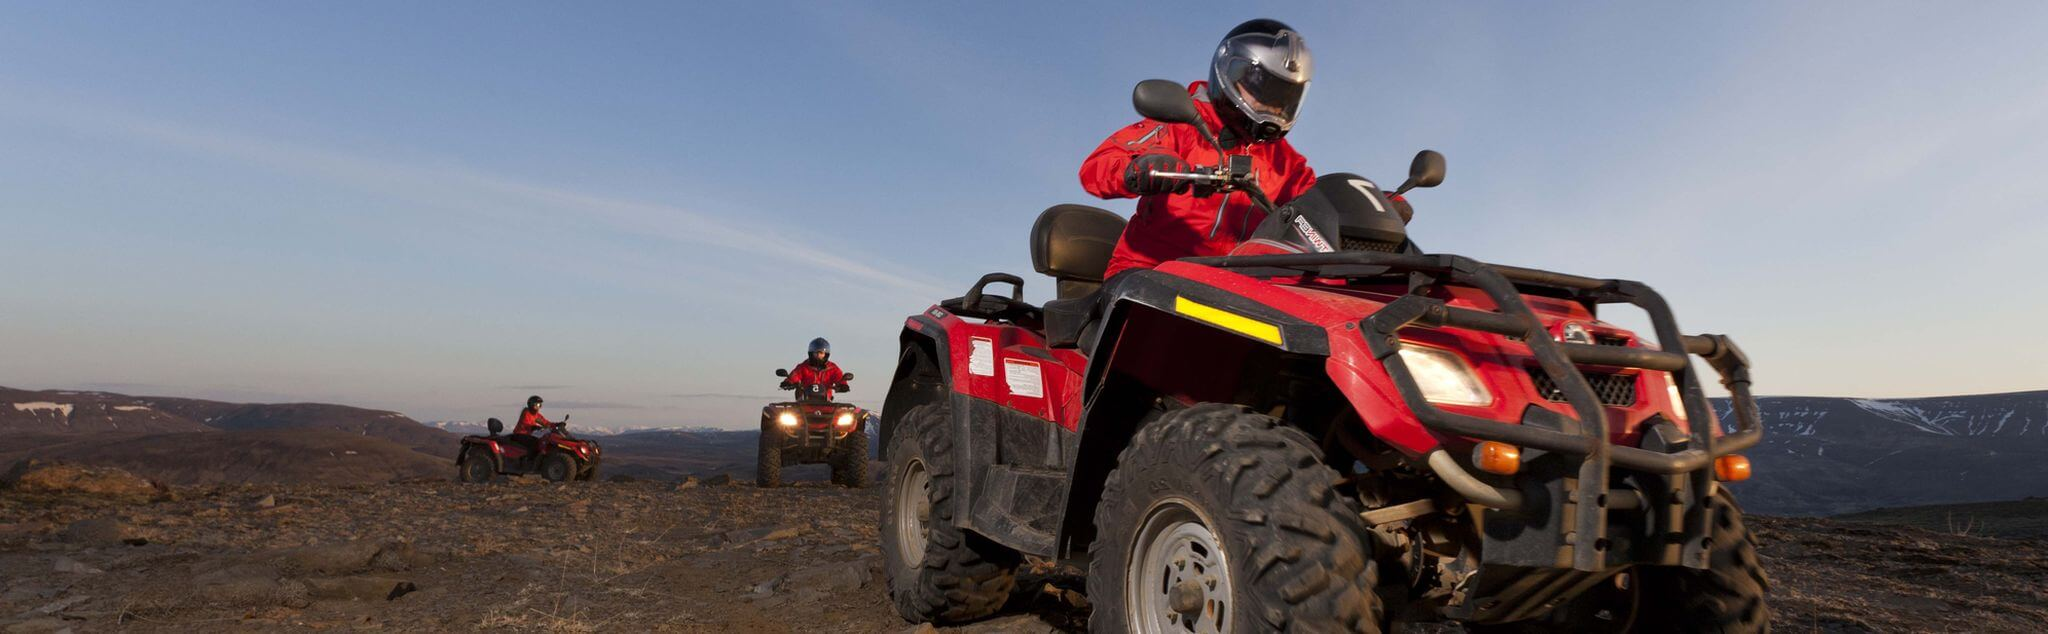 Quad Biking in Madrid (City)